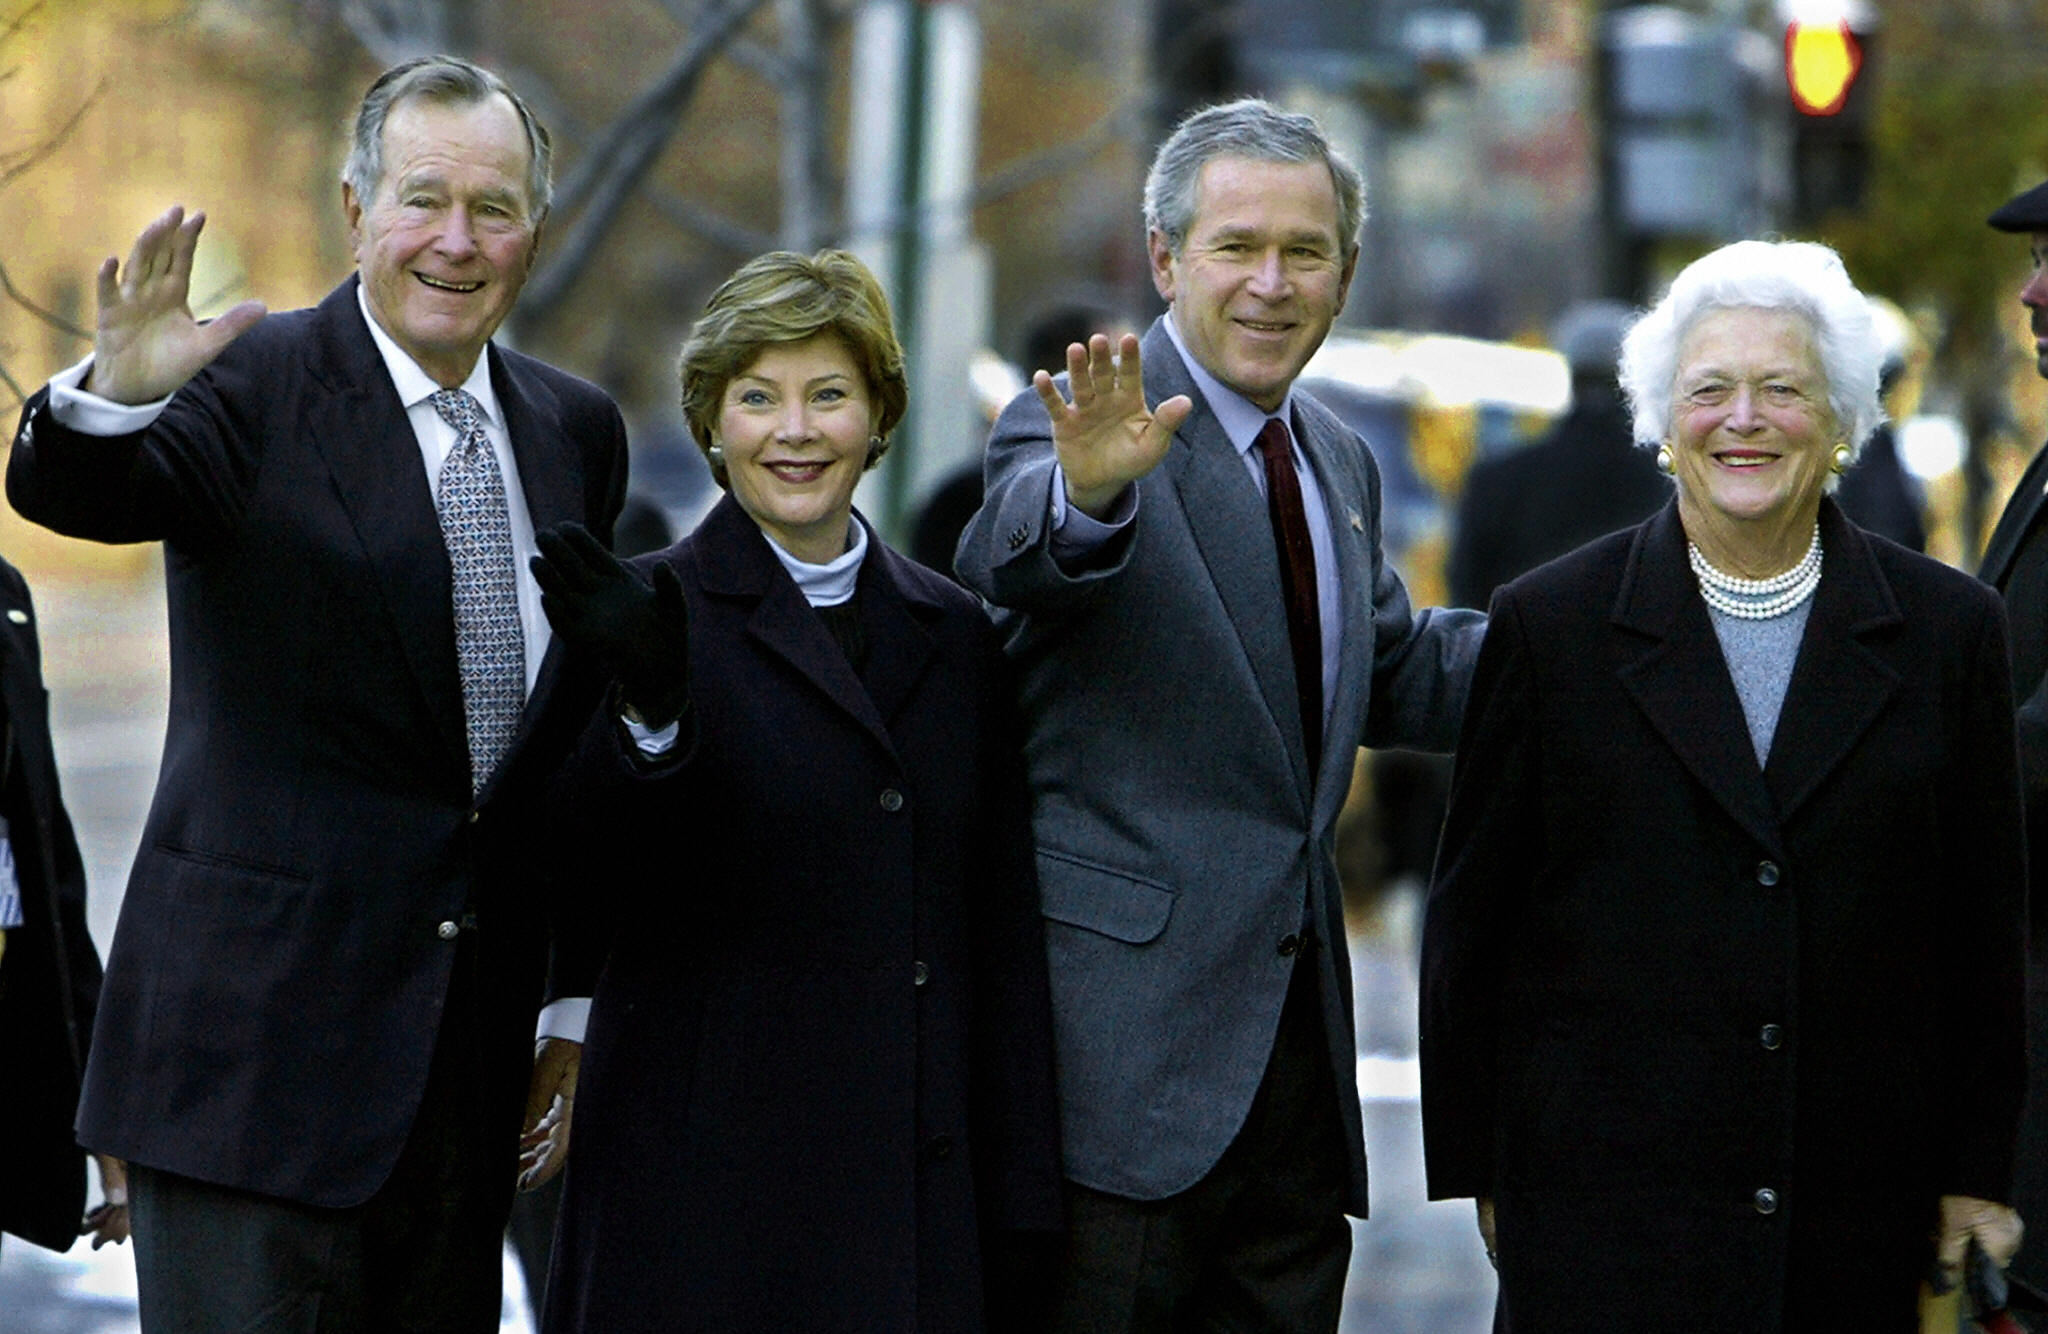 WASHINGTON, UNITED STATES:  Former US President George H.W. Bush (L) and his wife Barbara Bush(R) walk into St. John's Episcopal Church with their son US President George W. Bush(2nd-R) and his wife Laura to attend an early Sunday morning prayer service in 07 December 2003 in Washington. The historical church is a block away from the White House and has served various presidents for years.  AFP Photo/Paul J. RICHARDS  (Photo credit should read PAUL J.RICHARDS/AFP/Getty Images)